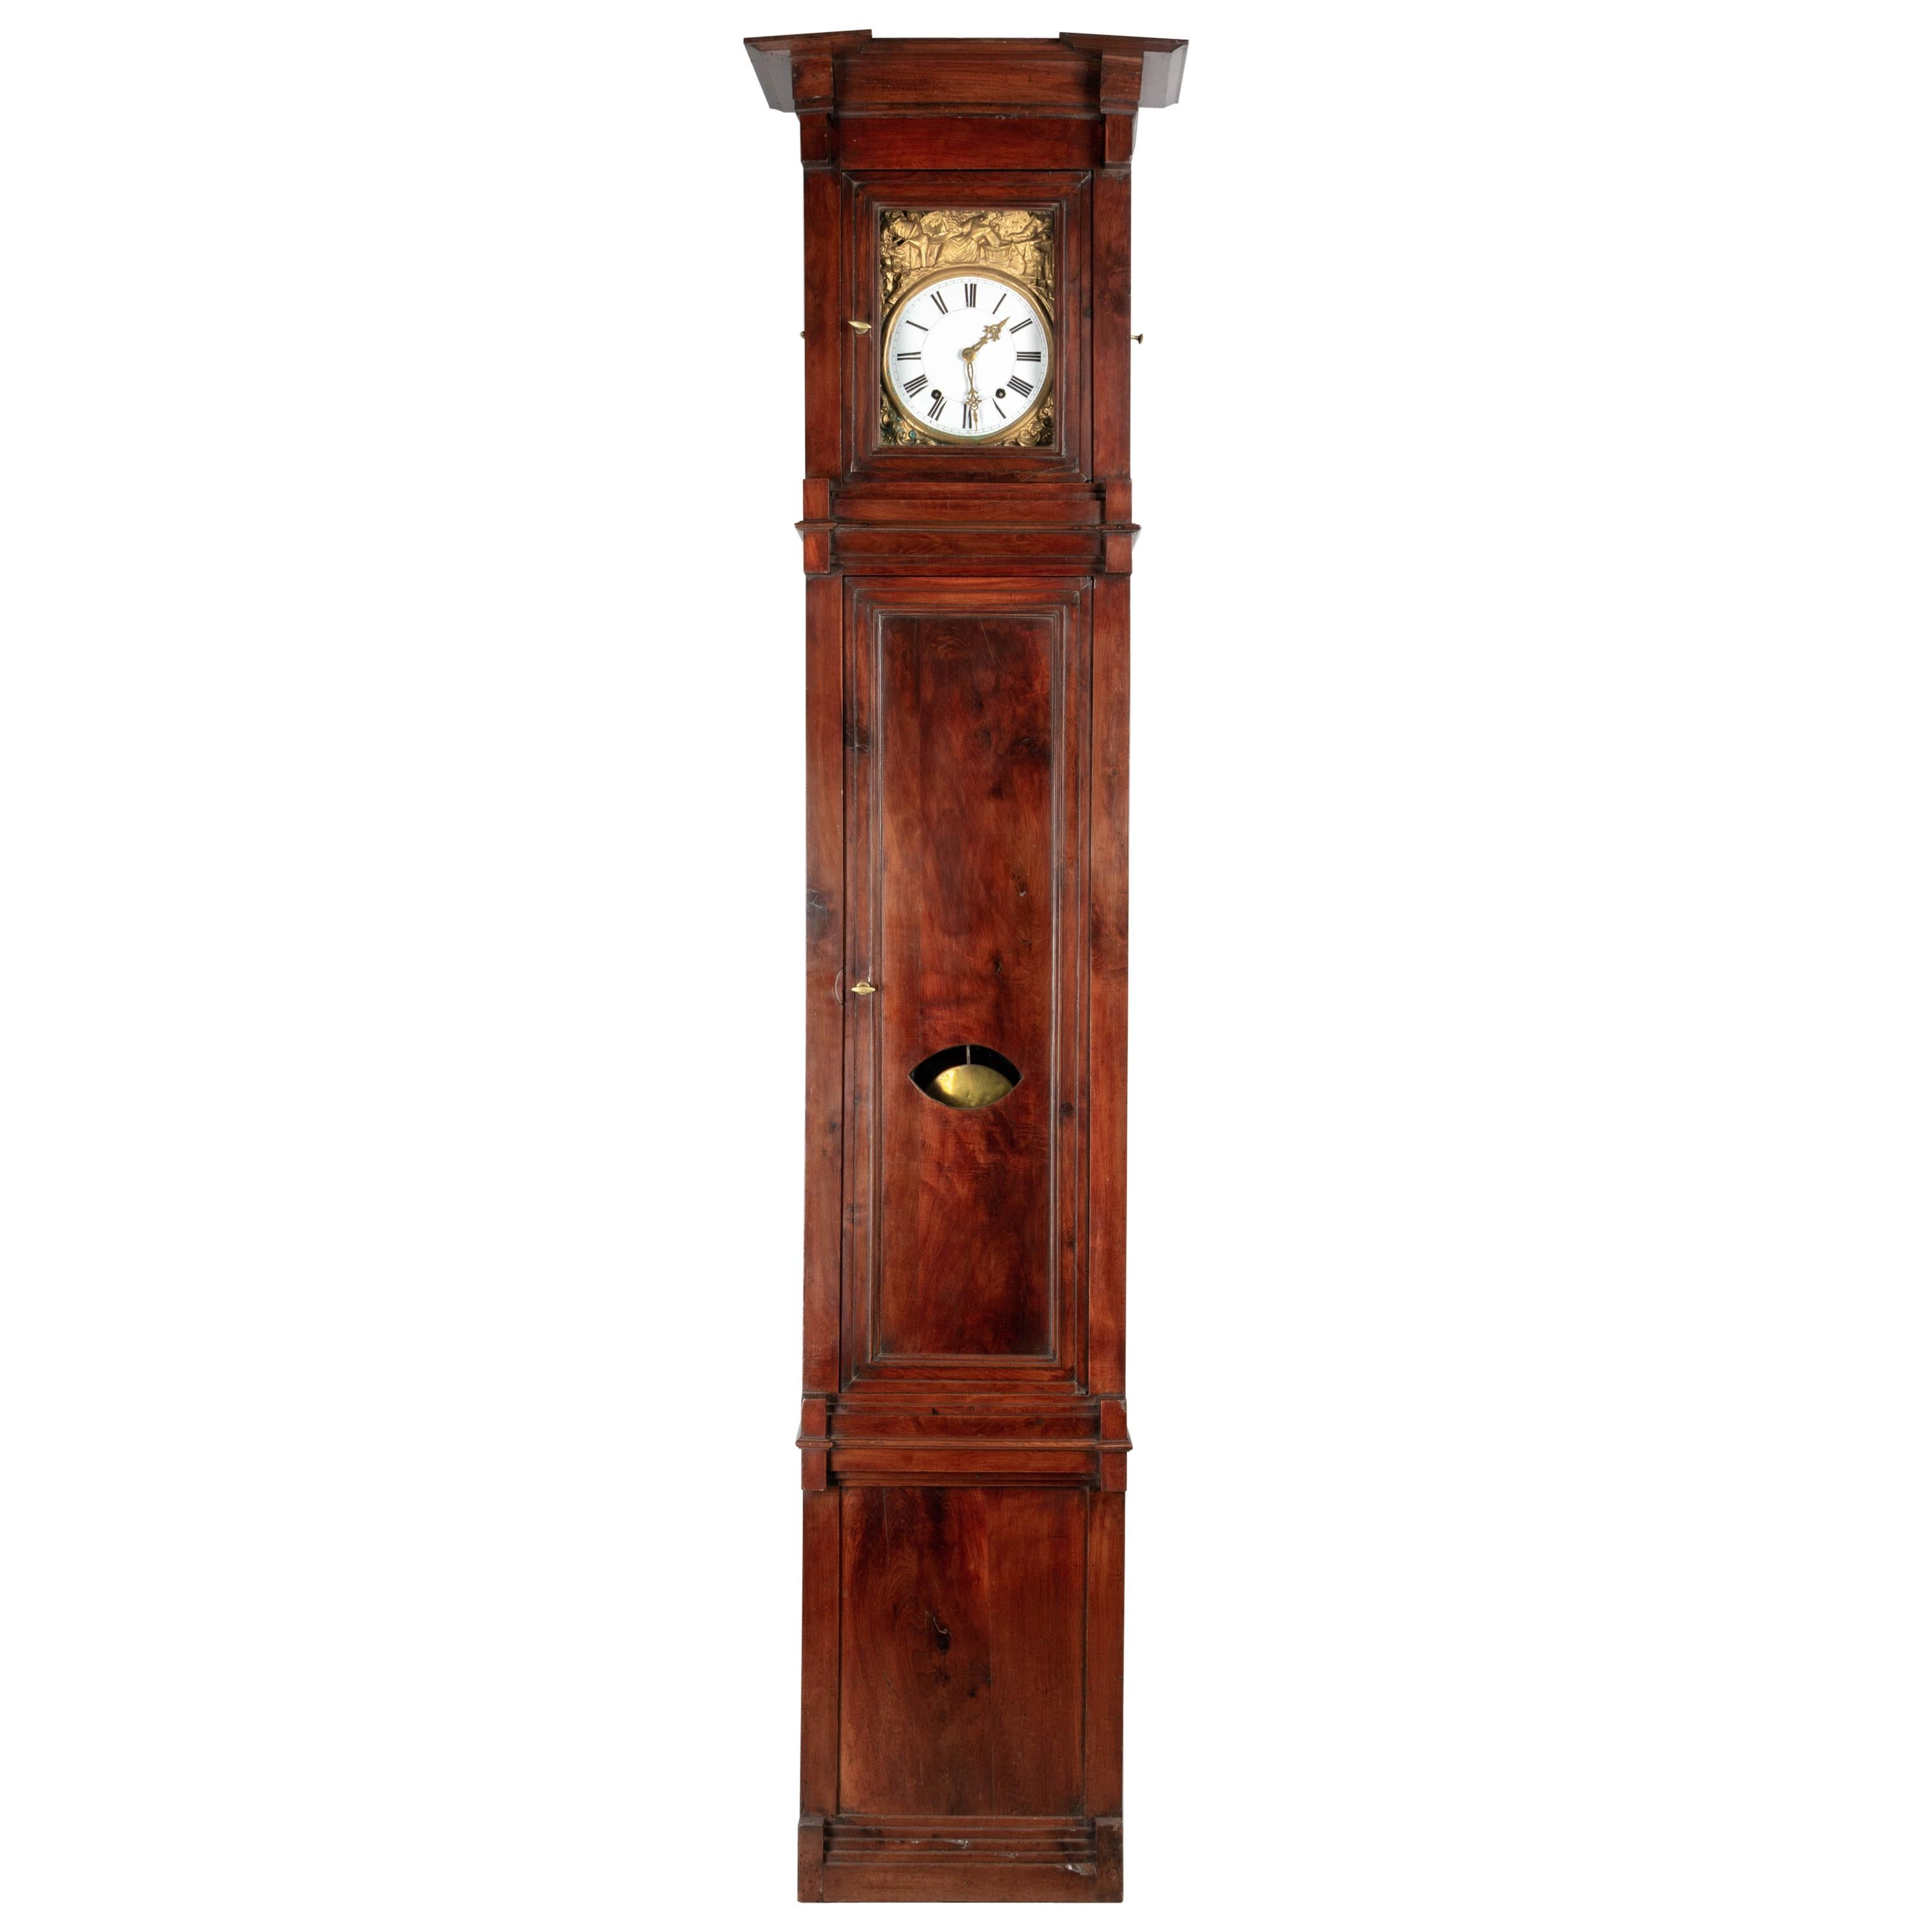 19th Century French Tall Case Clock or Horloge de Parquet